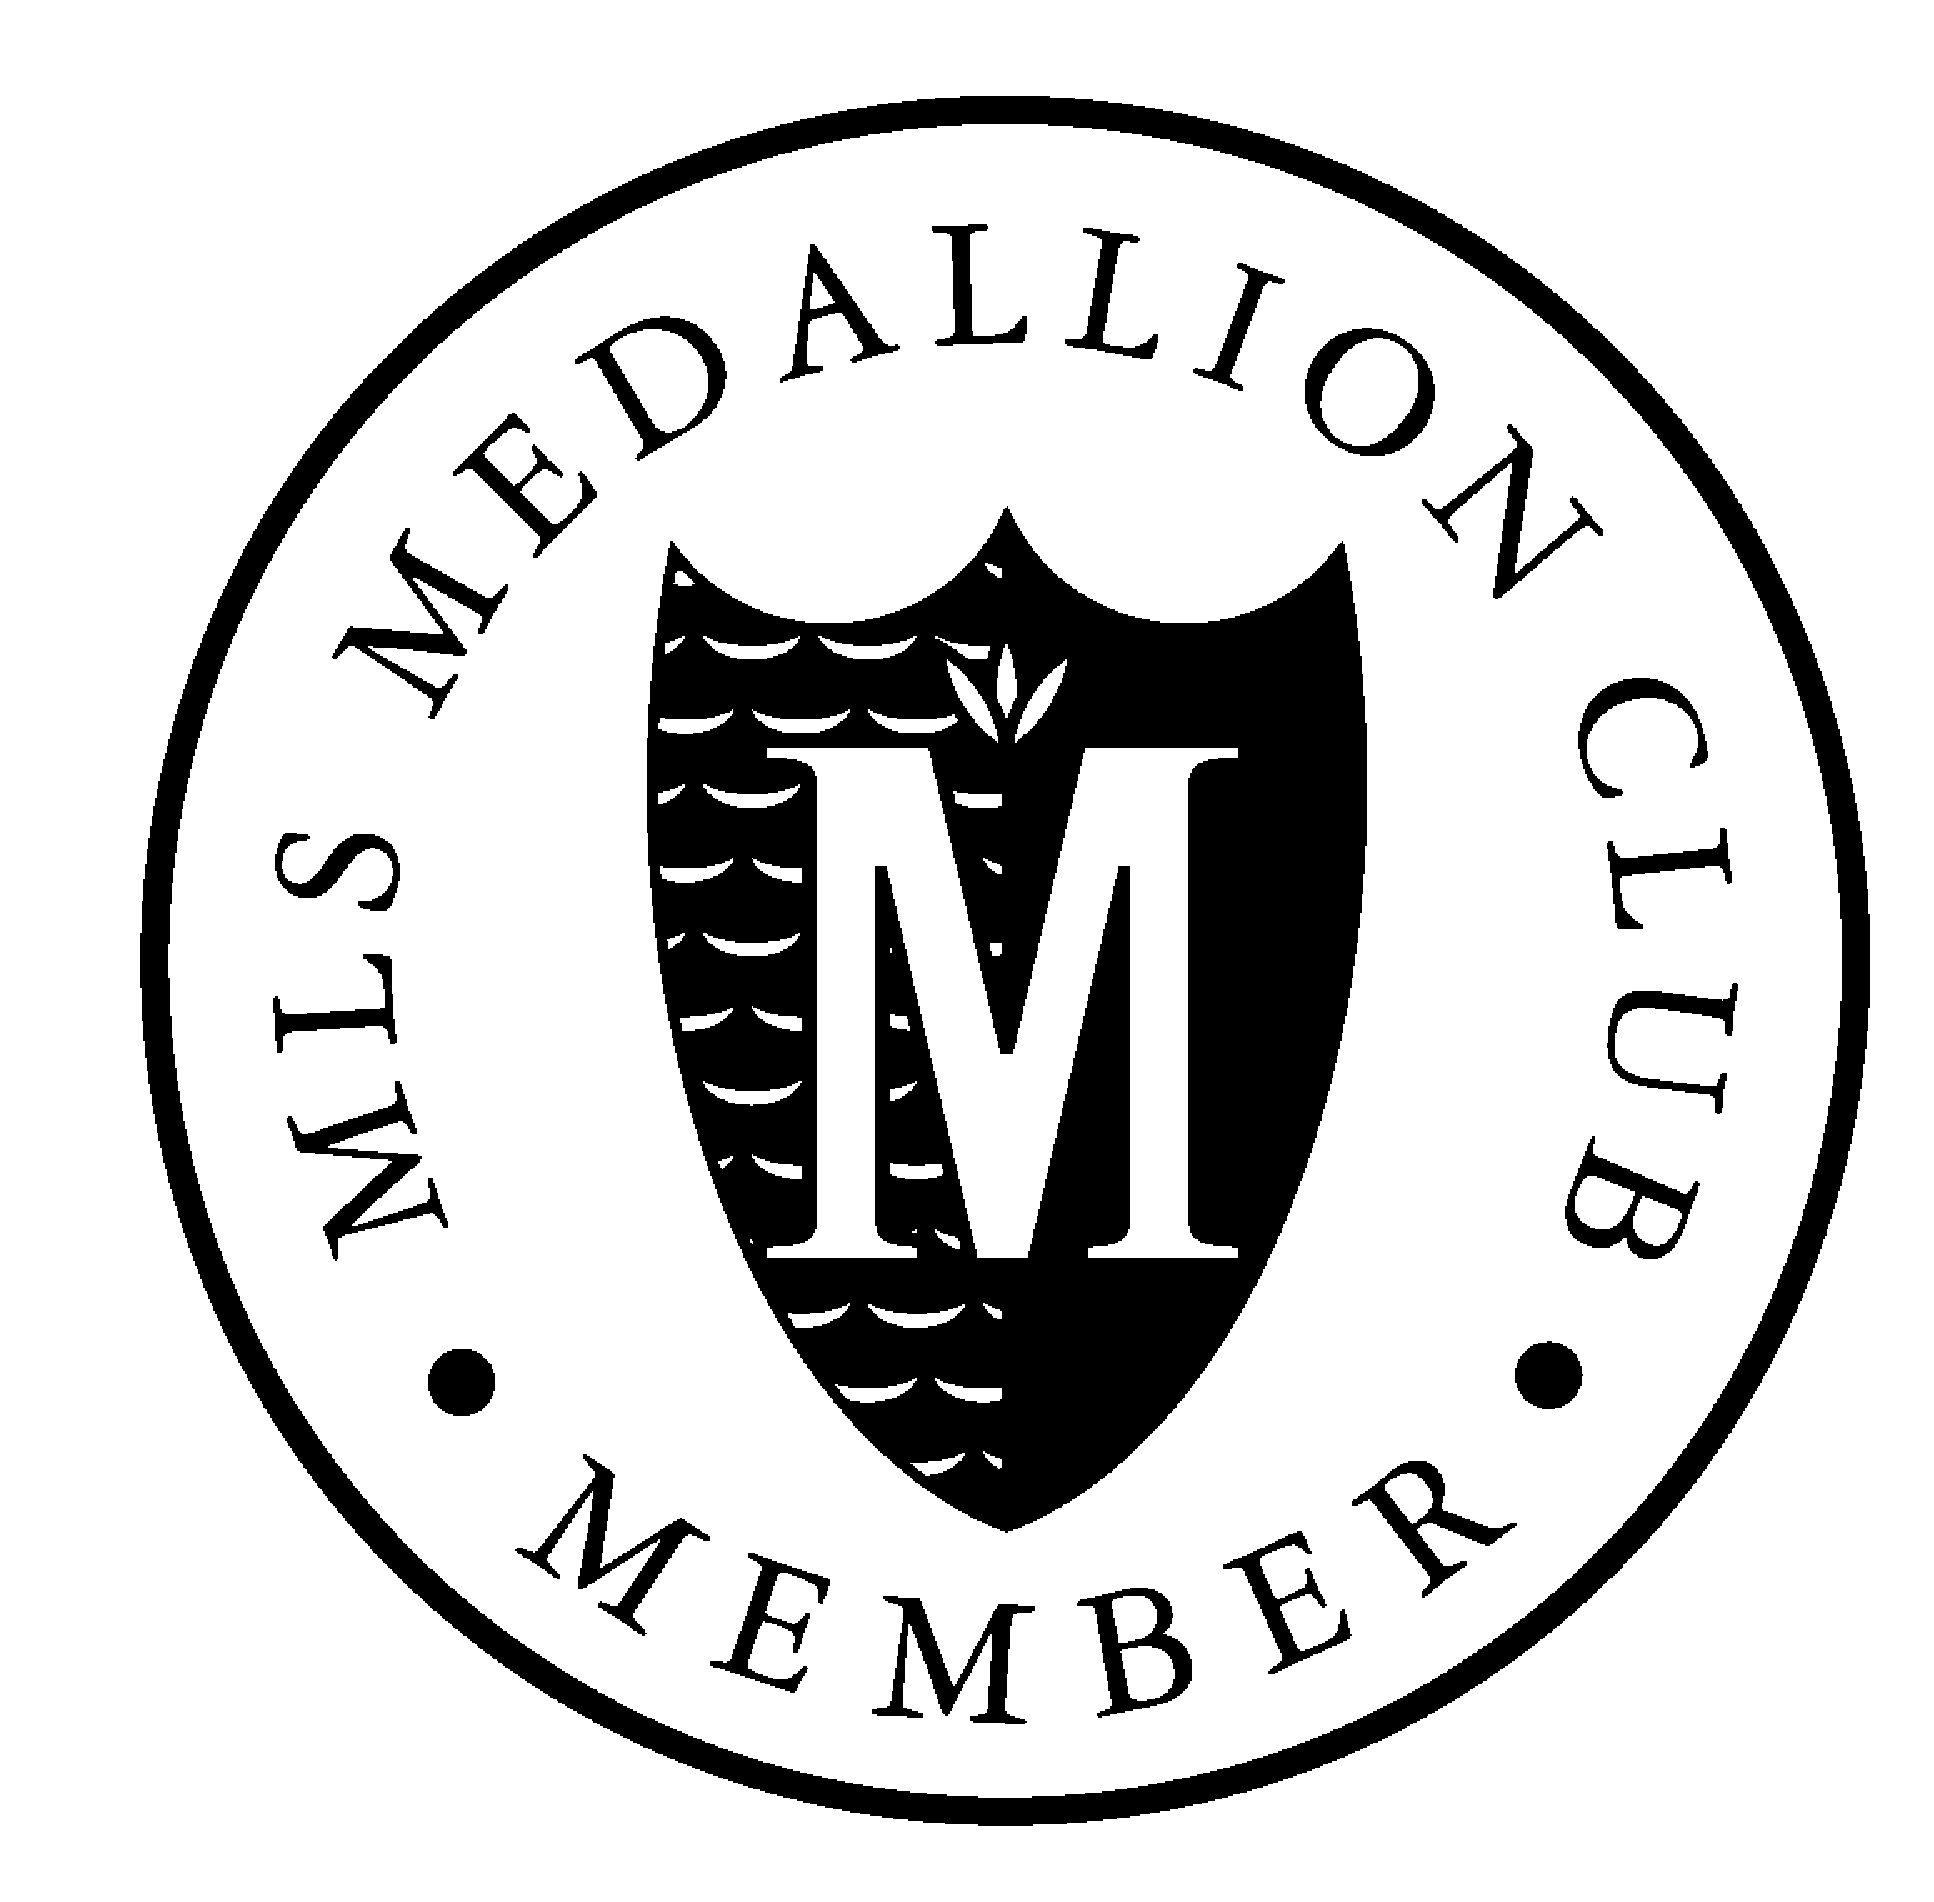 medallion club logo